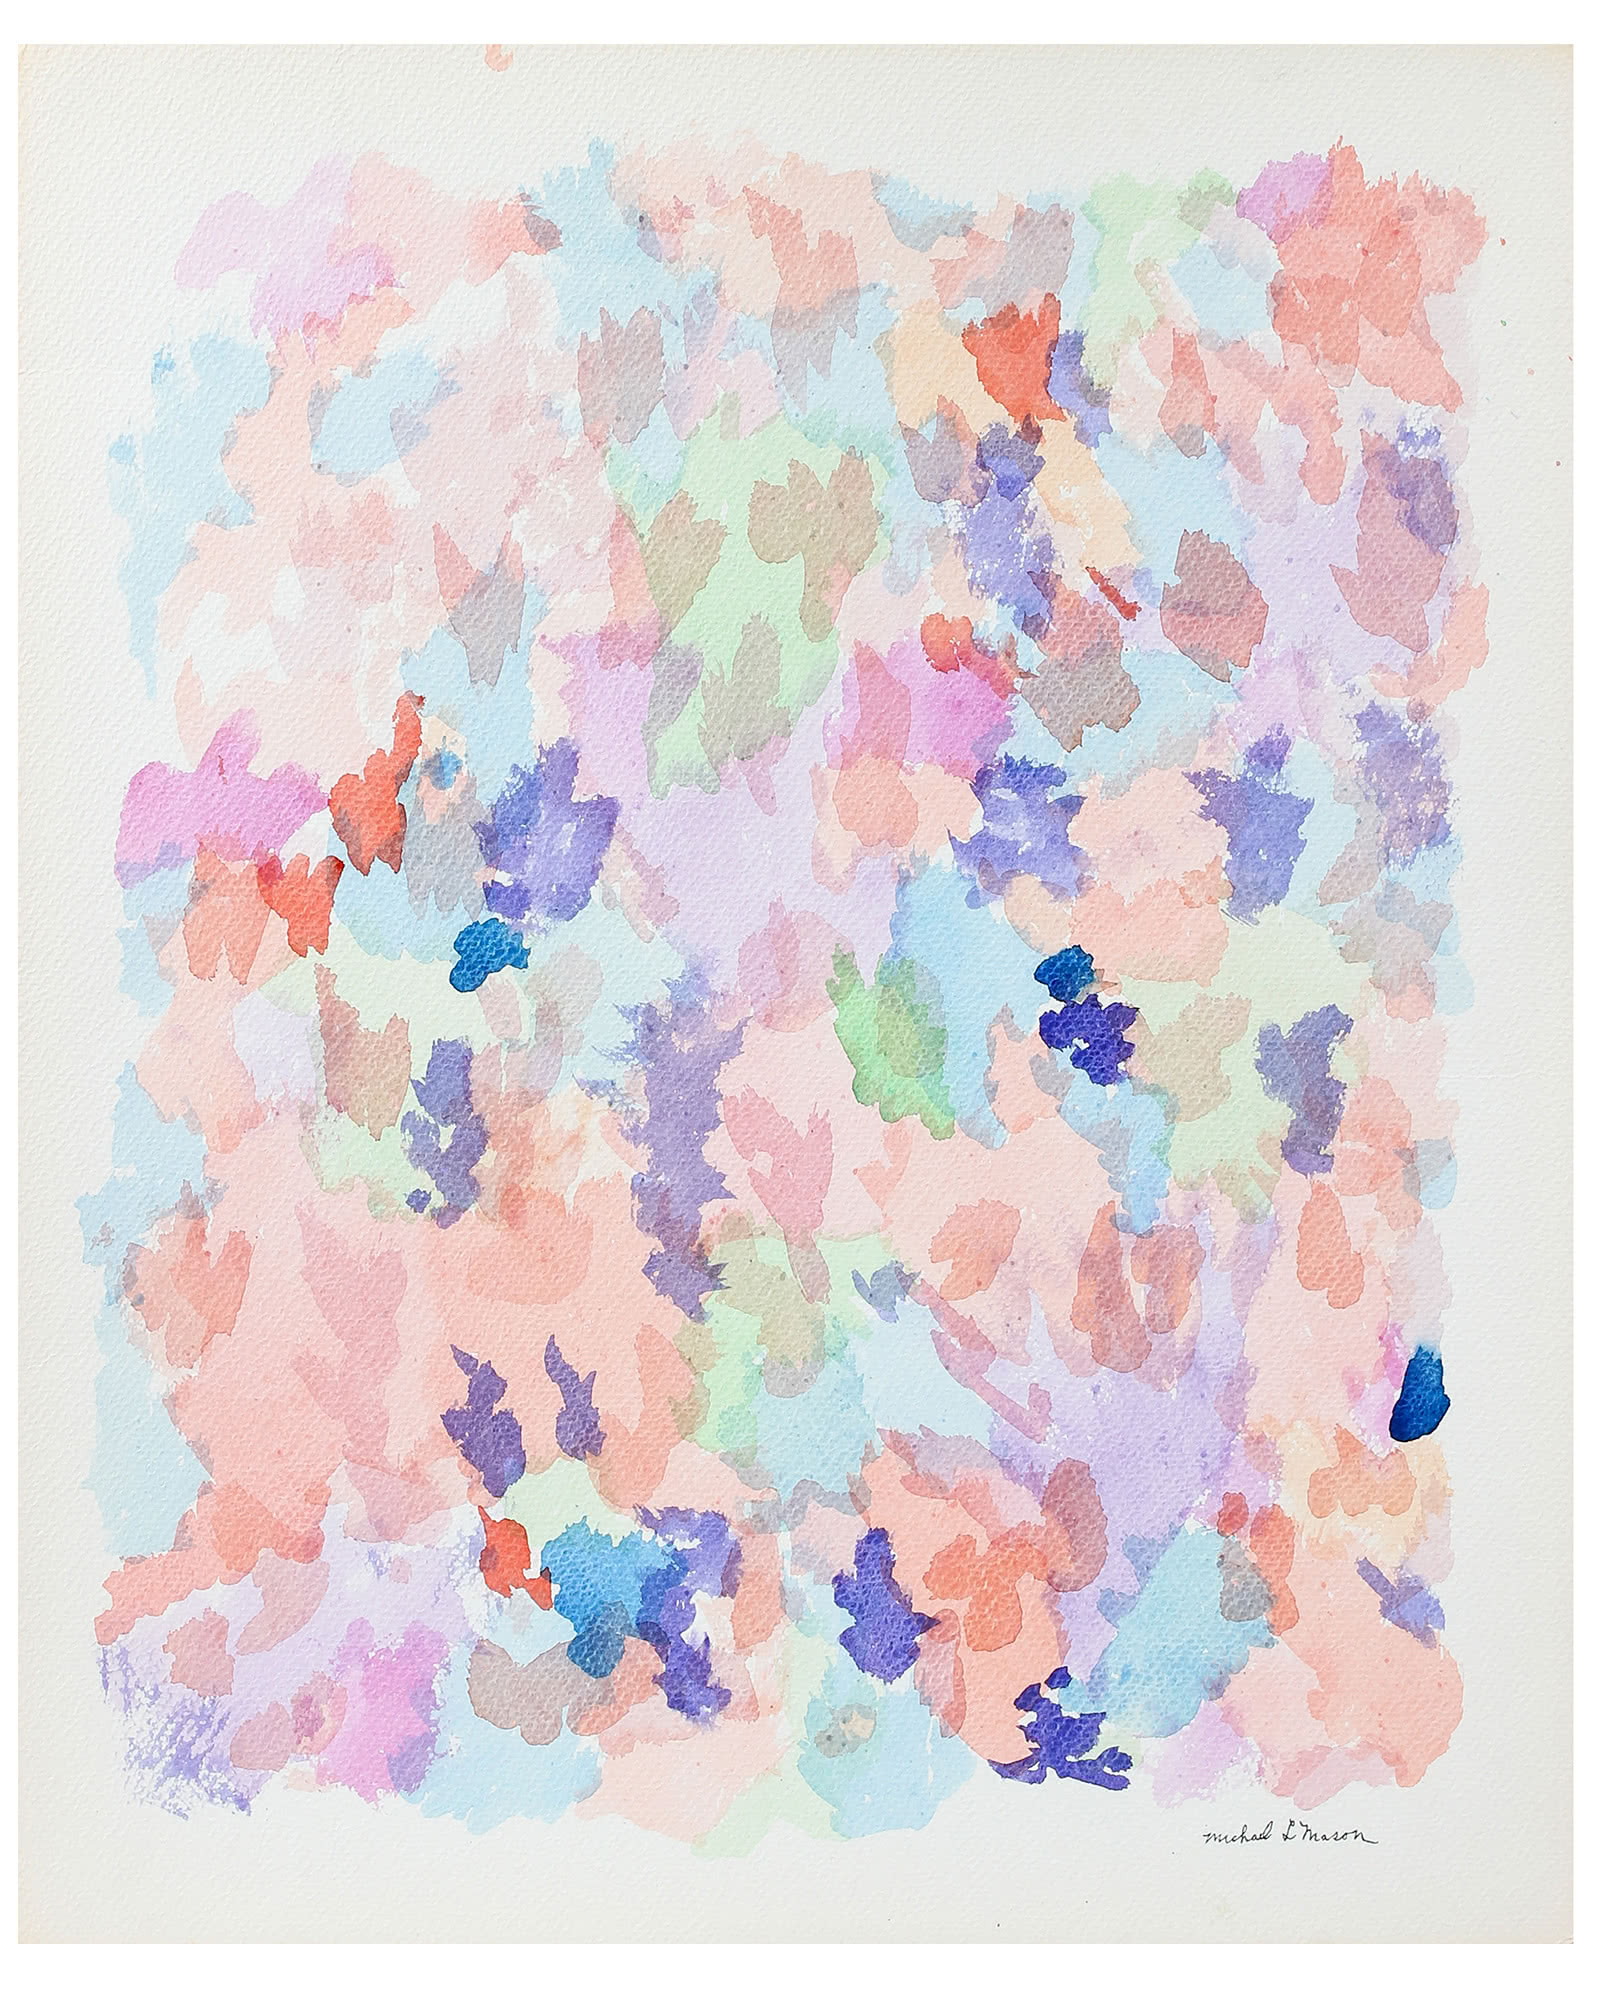 """Pastel Floral Abstraction"" by Michael L. Mason,"